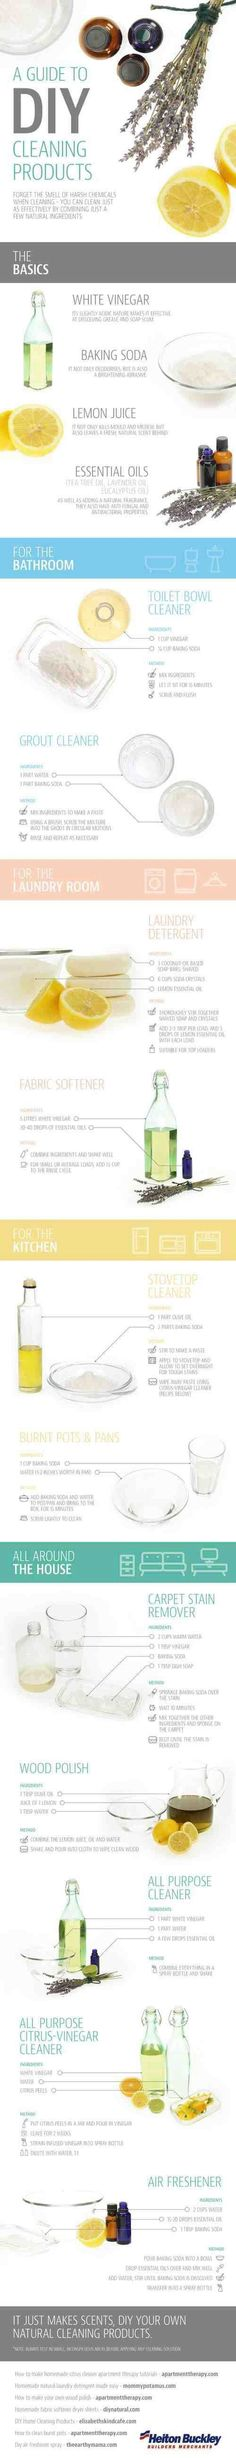 Here's a few ideas on how to DIY with cleaning products!